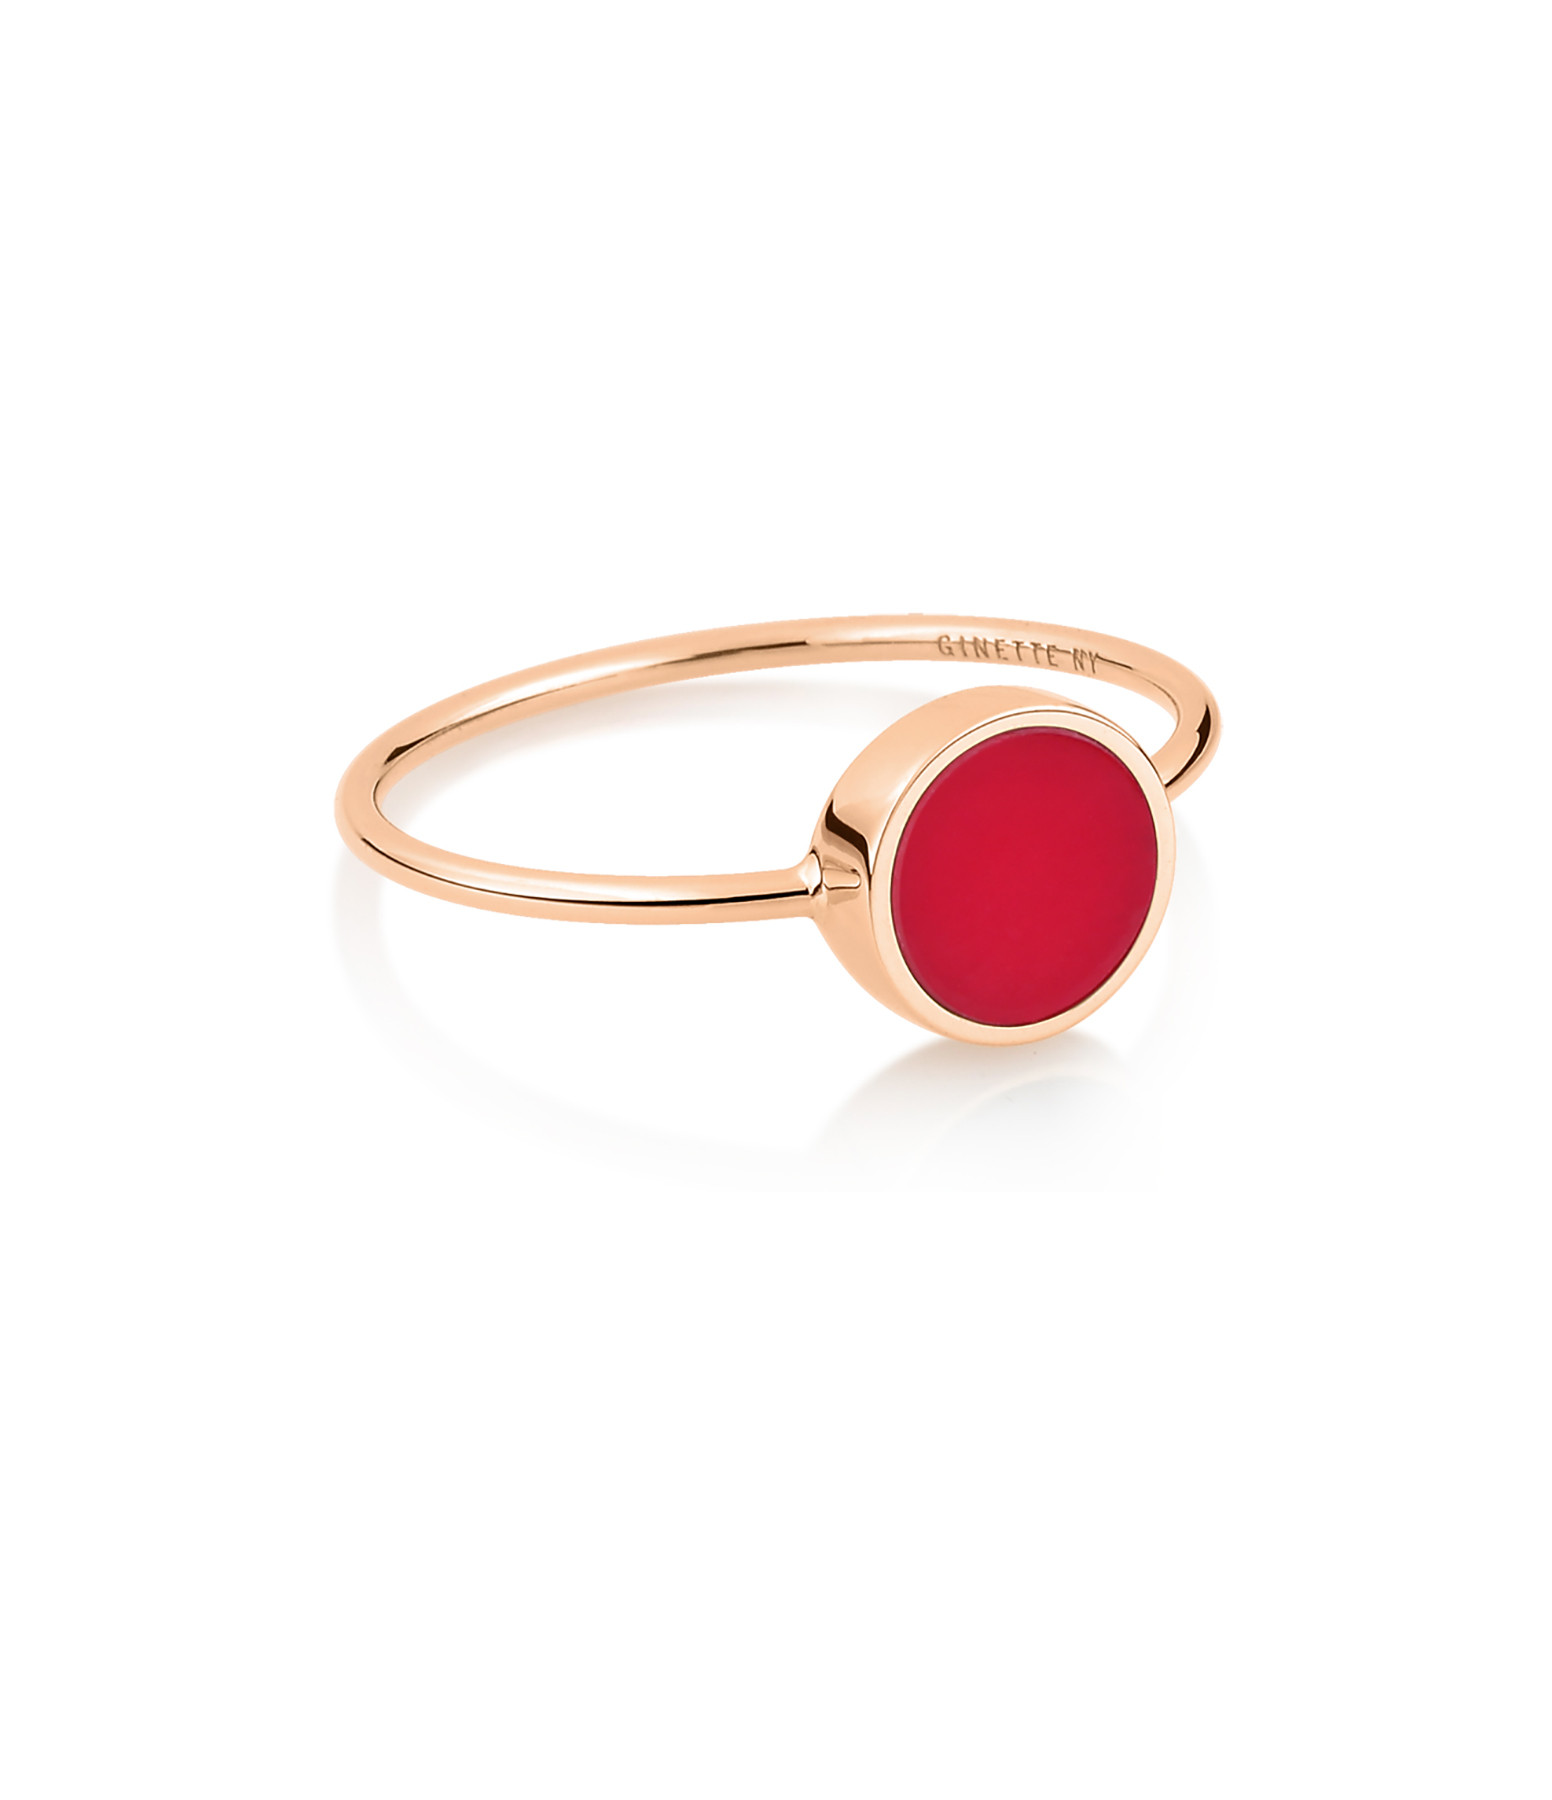 GINETTE NY - Bague Ever Mini Disc Or Rose Corail